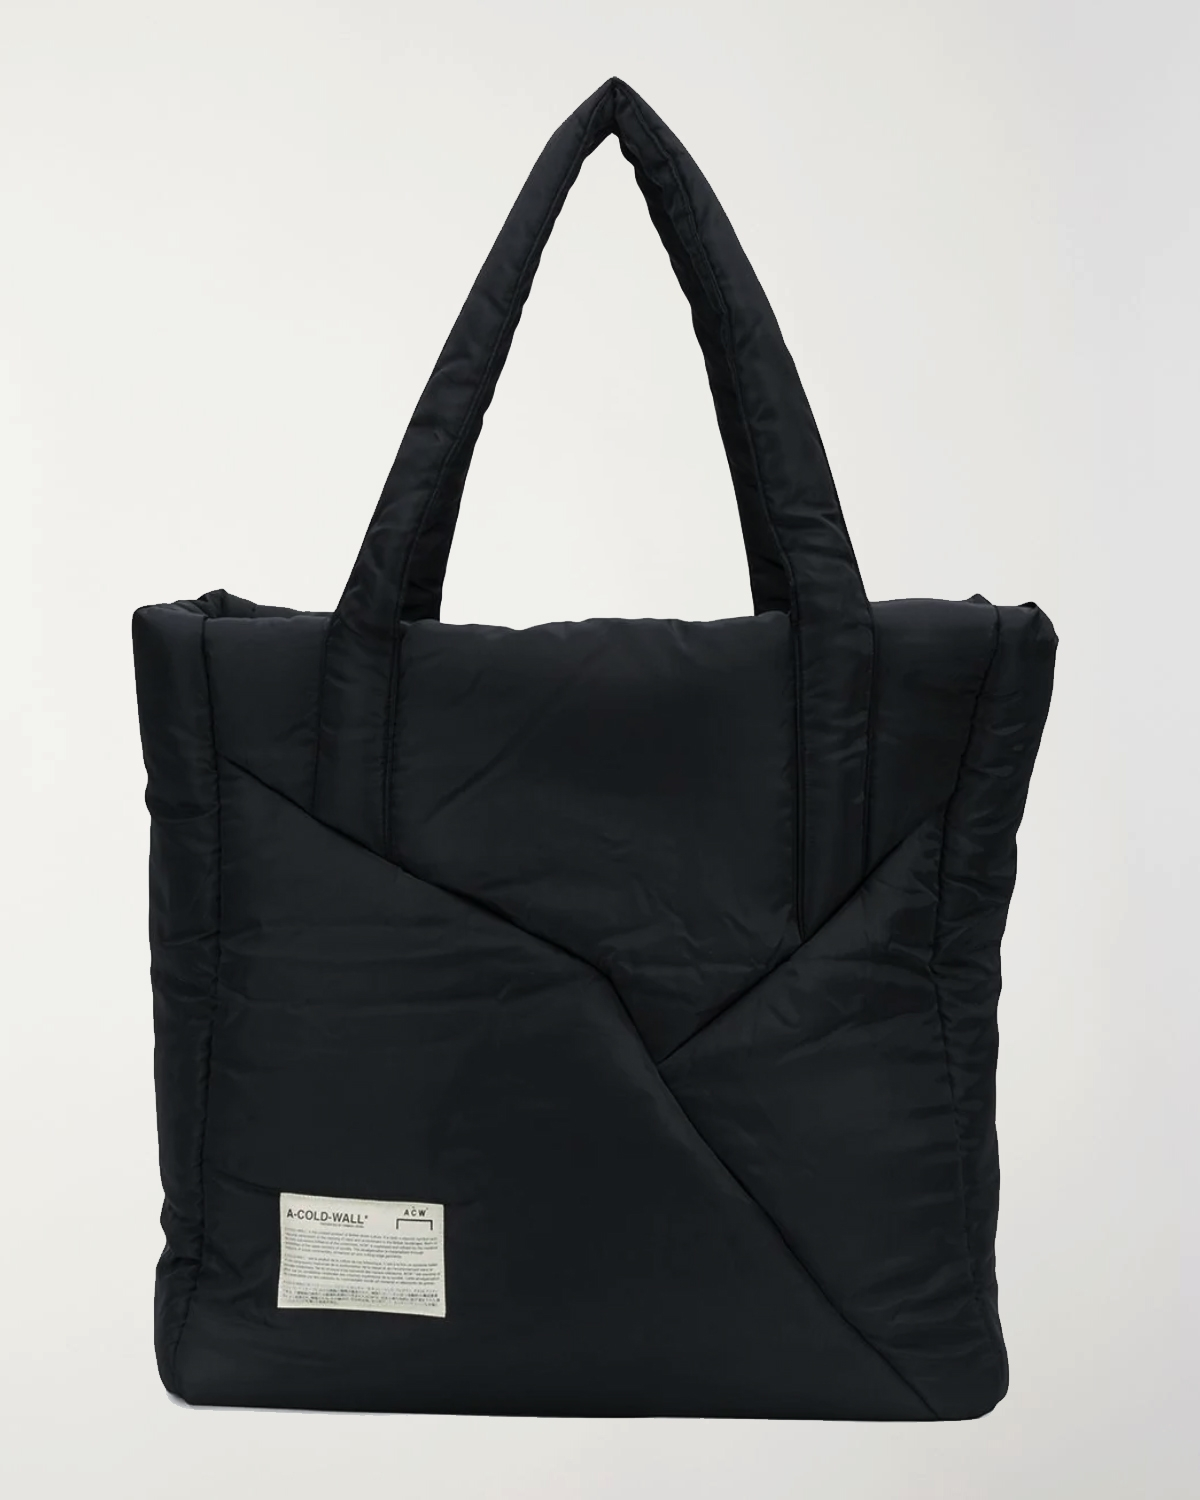 A-Cold-Wall* padded tote bag